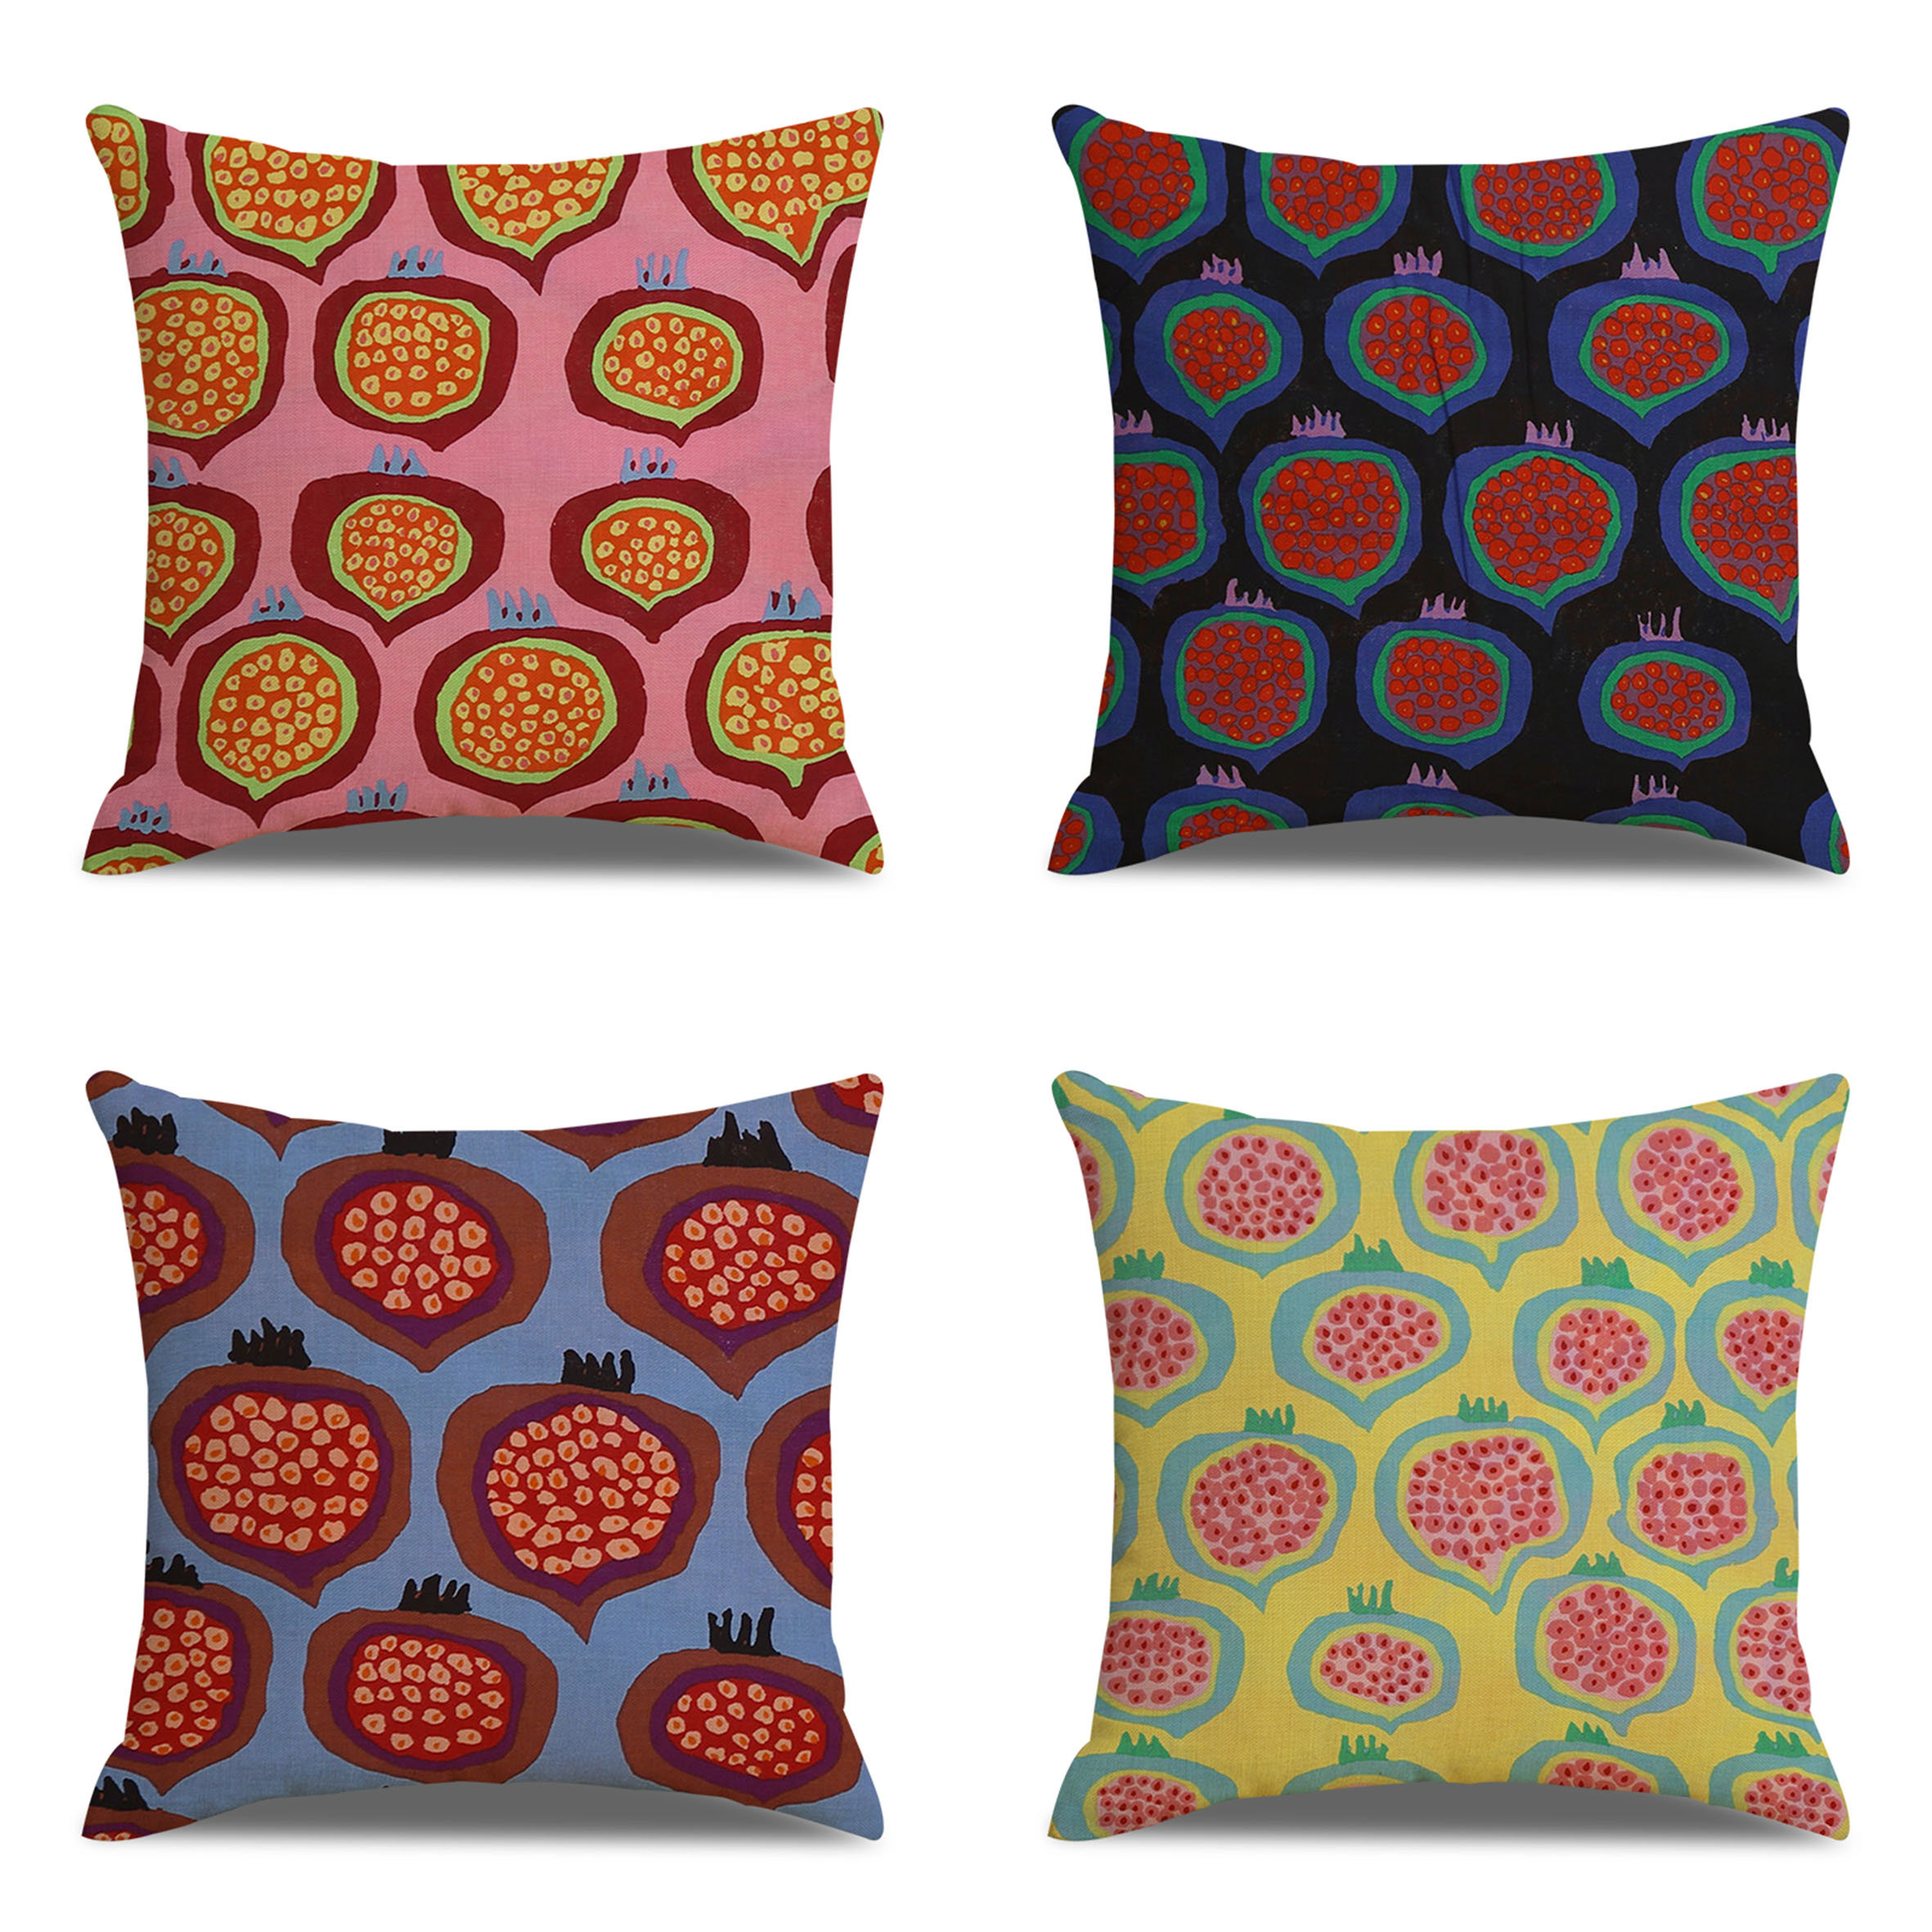 Red Pomegranate Pattern Linen Cotton Cushion Cover Home Bedroom Sofa Art Decor Throw Pillowcases